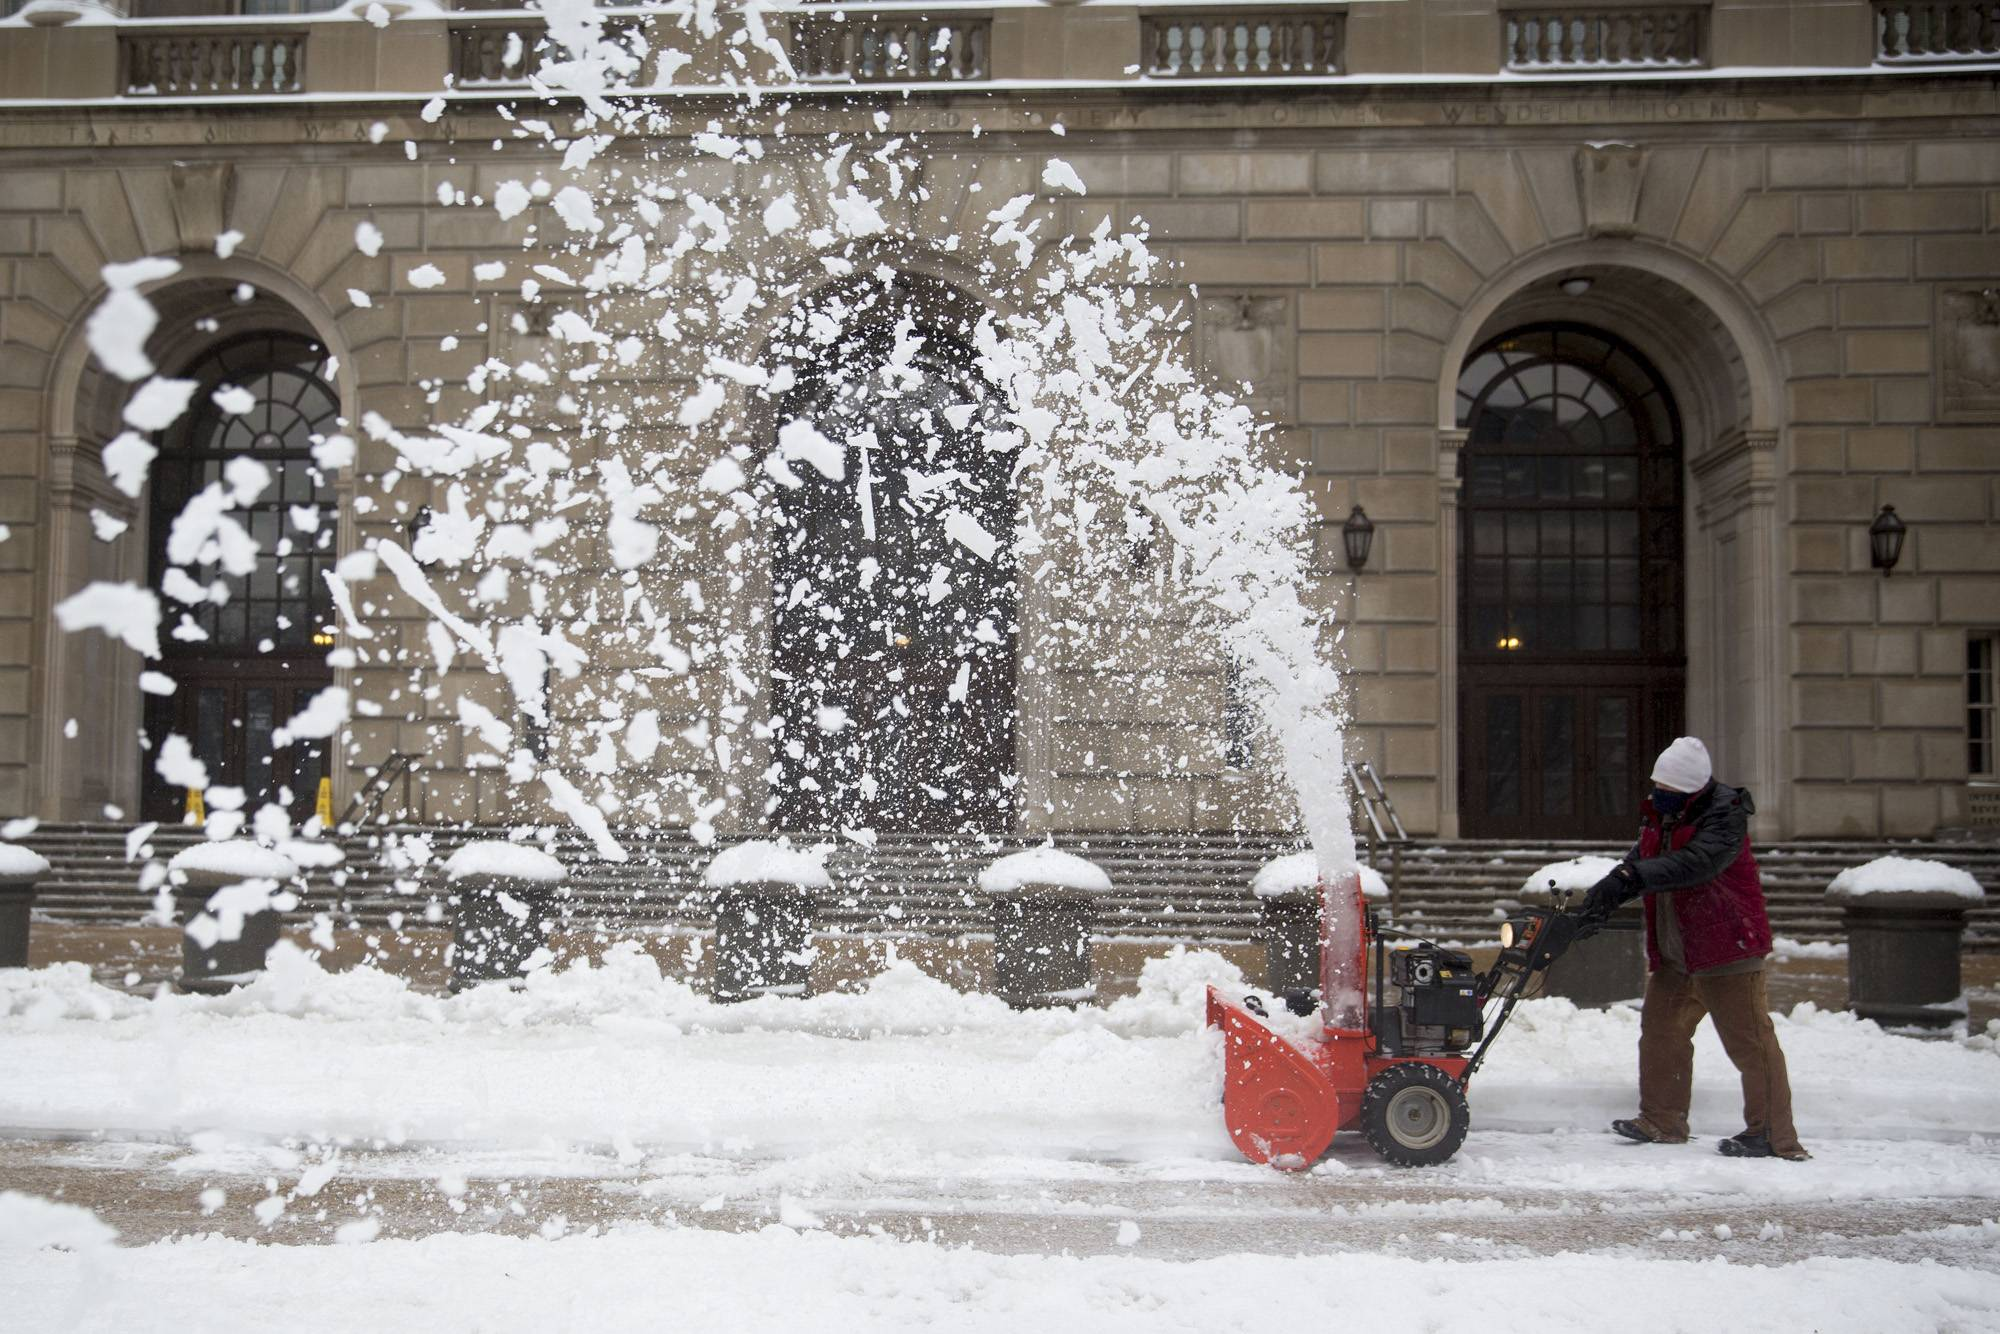 A worker uses a snowblower outside the Internal Revenue Service (IRS) in Washington, D.C., U.S., on Thursday, Feb. 13, 2014. The winter storm that cut electricity to more than half a million customers across the South and grounded 10,000 flights this week turned its power on the U.S. Northeast, bringing heavy snow from Virginia to Maine.